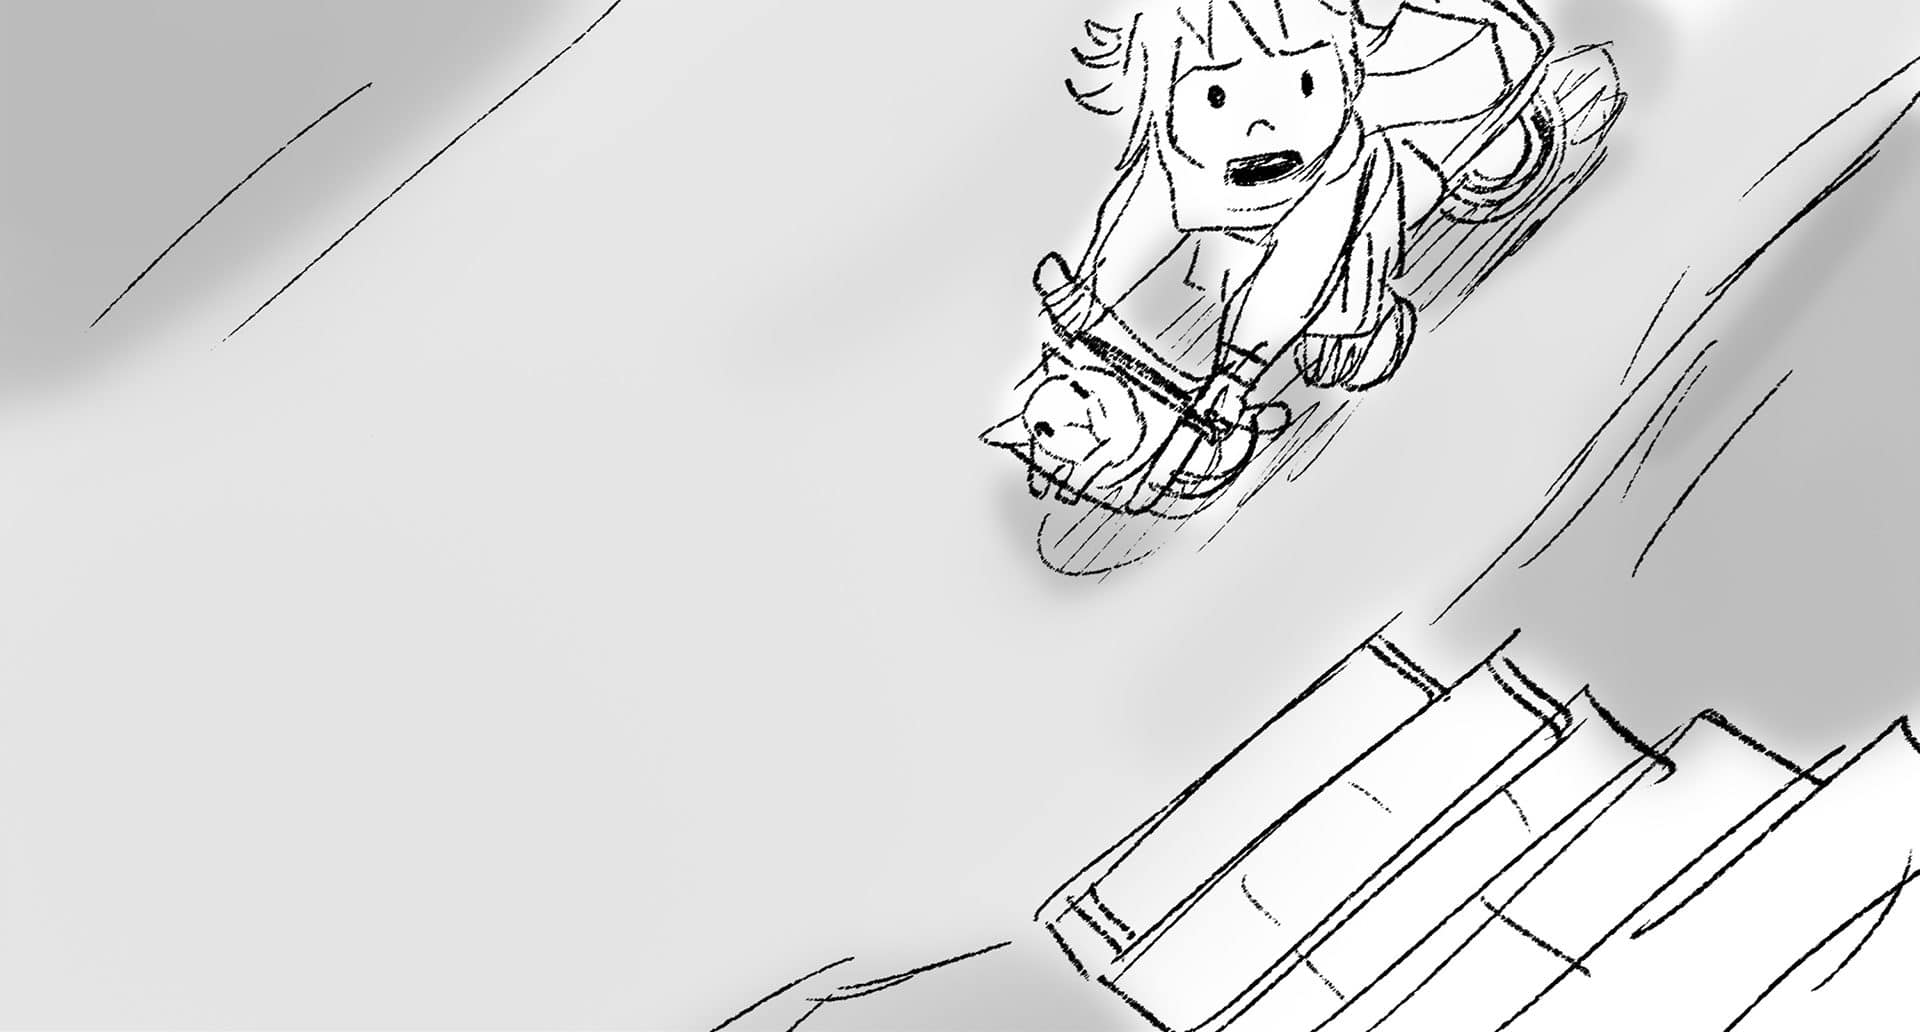 storyboard image of girl riding bike